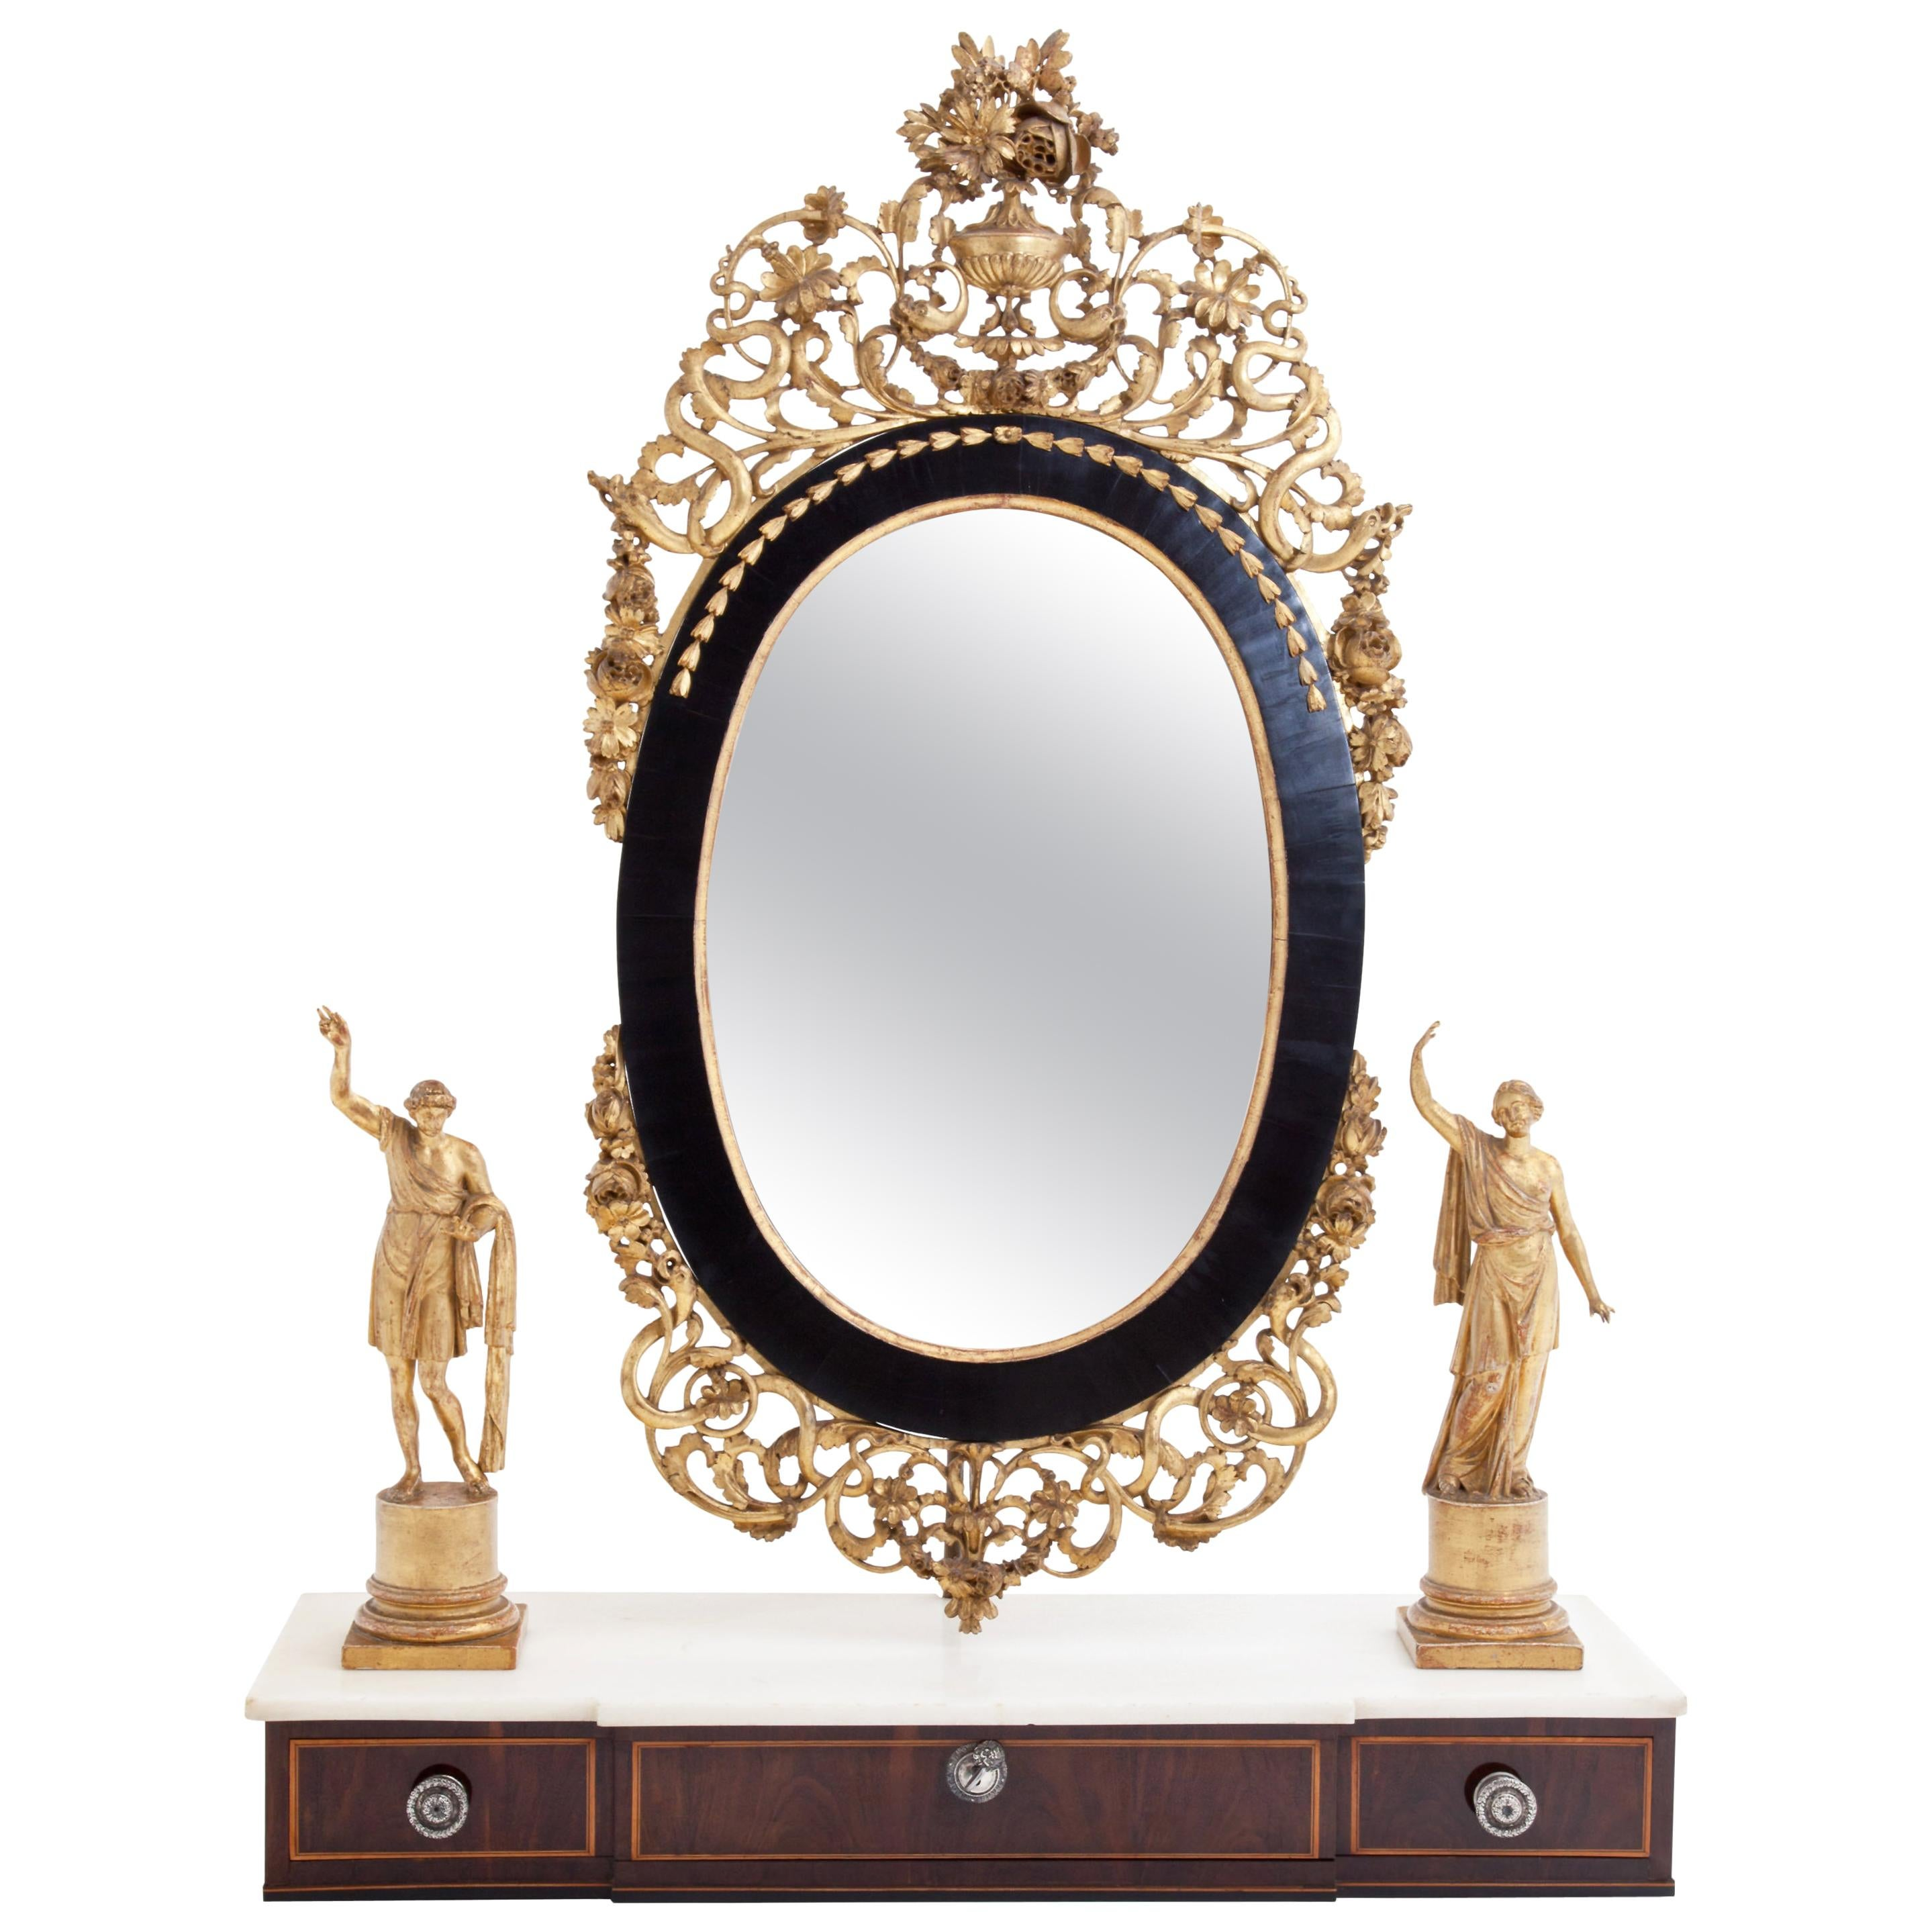 Giltwood and Mahogany Mirror with Marble Top, Piedmont / Italy, 18th Century